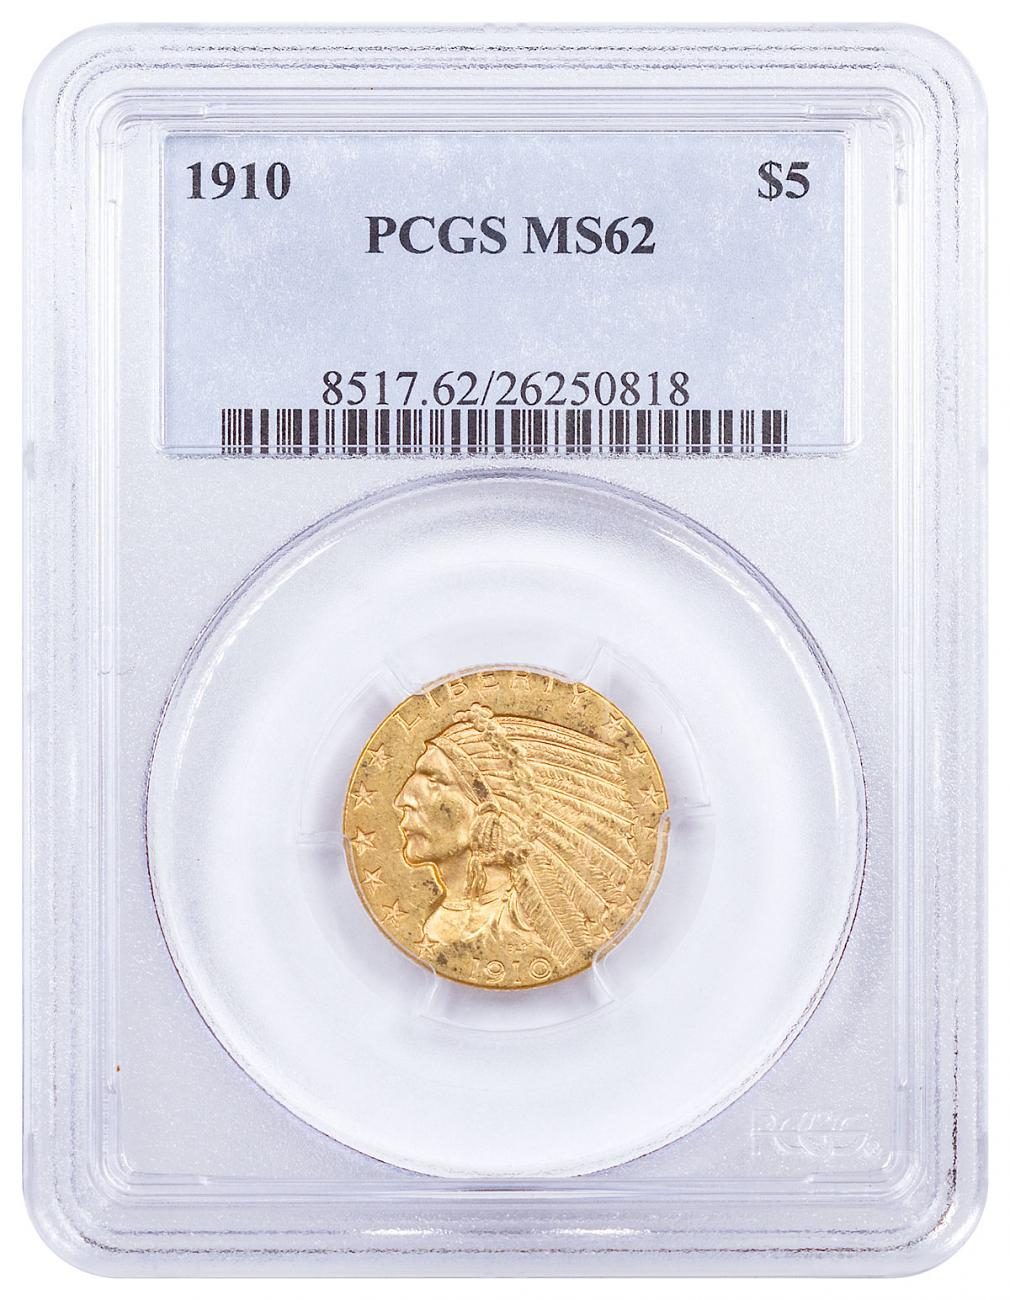 1910 Indian Head $5 Gold Half Eagles PCGS MS62